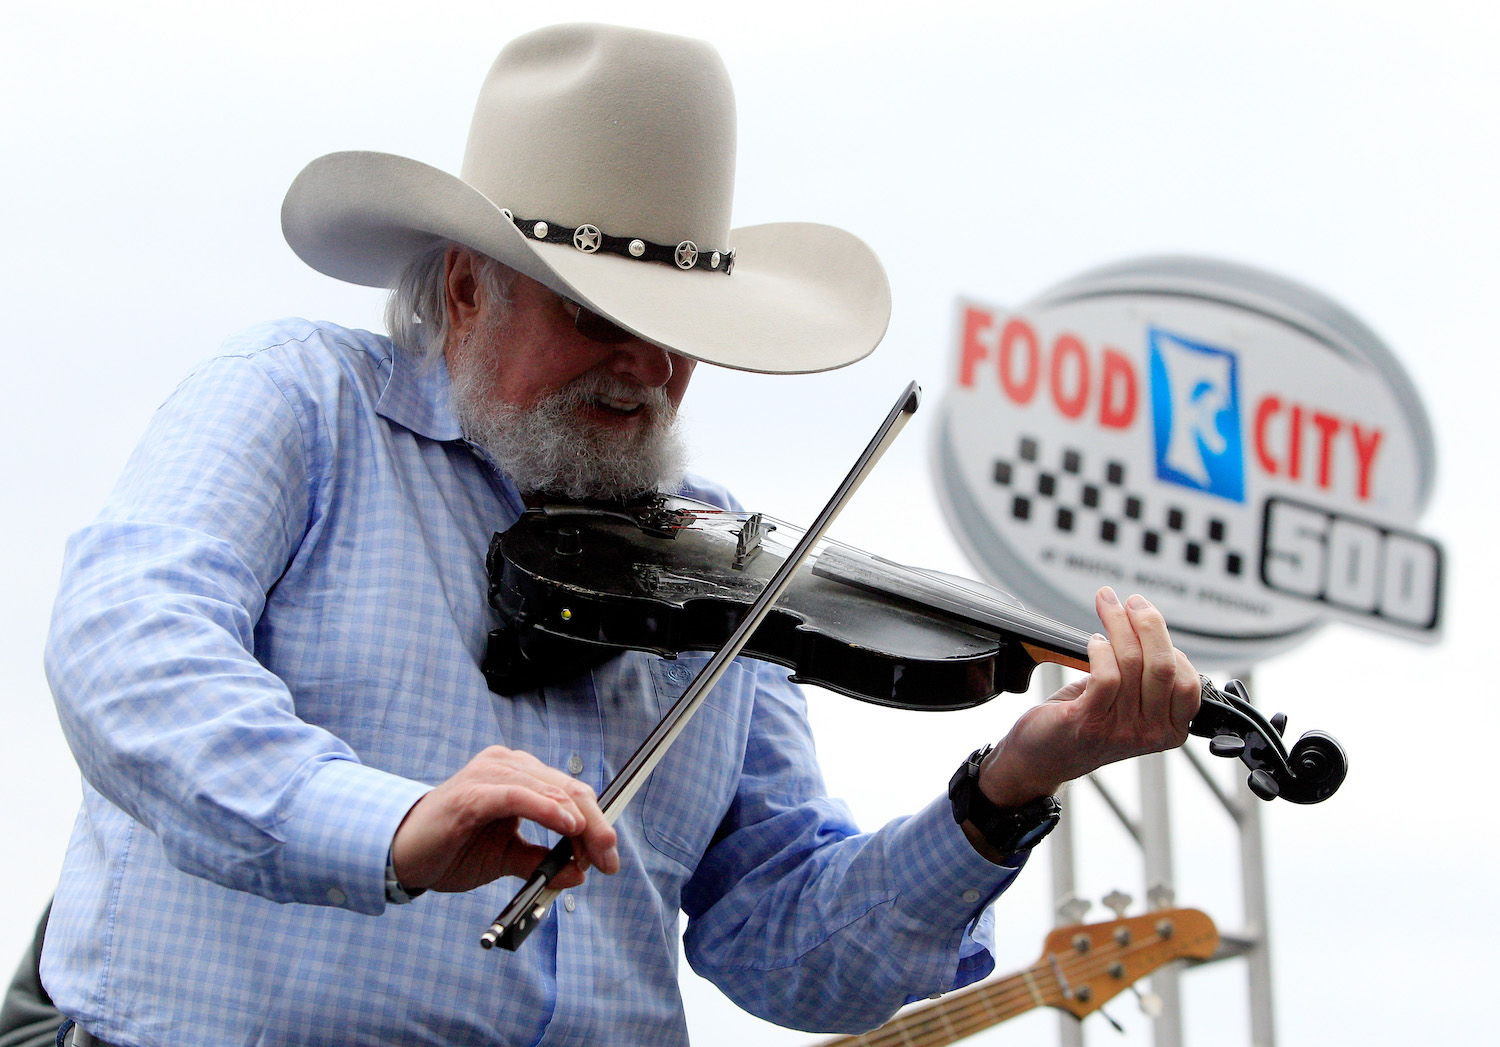 Charlie Daniels performs at NASCAR Event